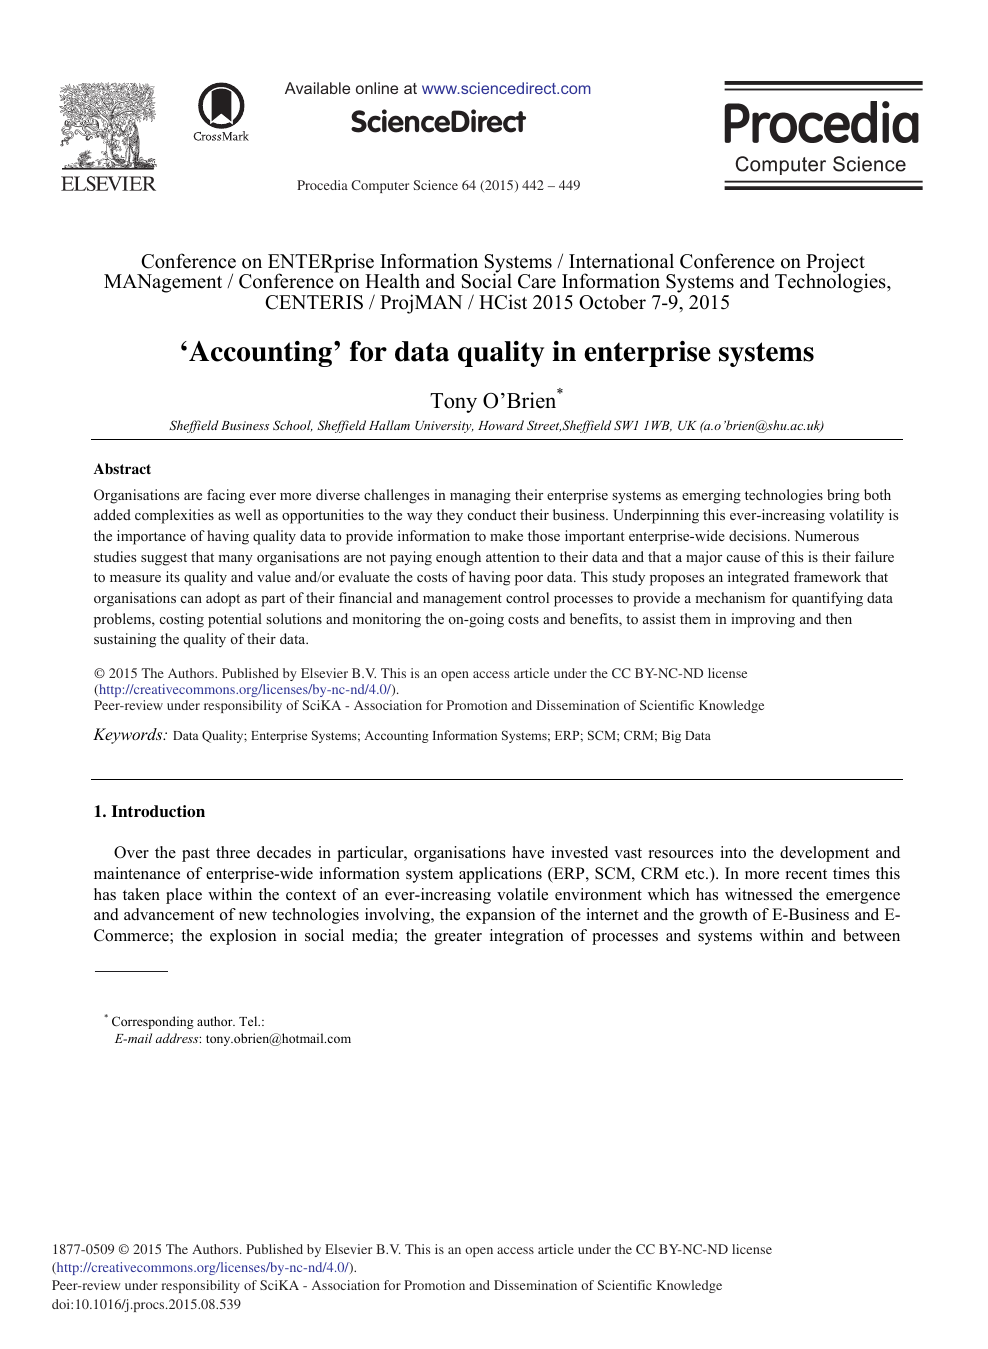 Accounting' for Data Quality in Enterprise Systems – topic